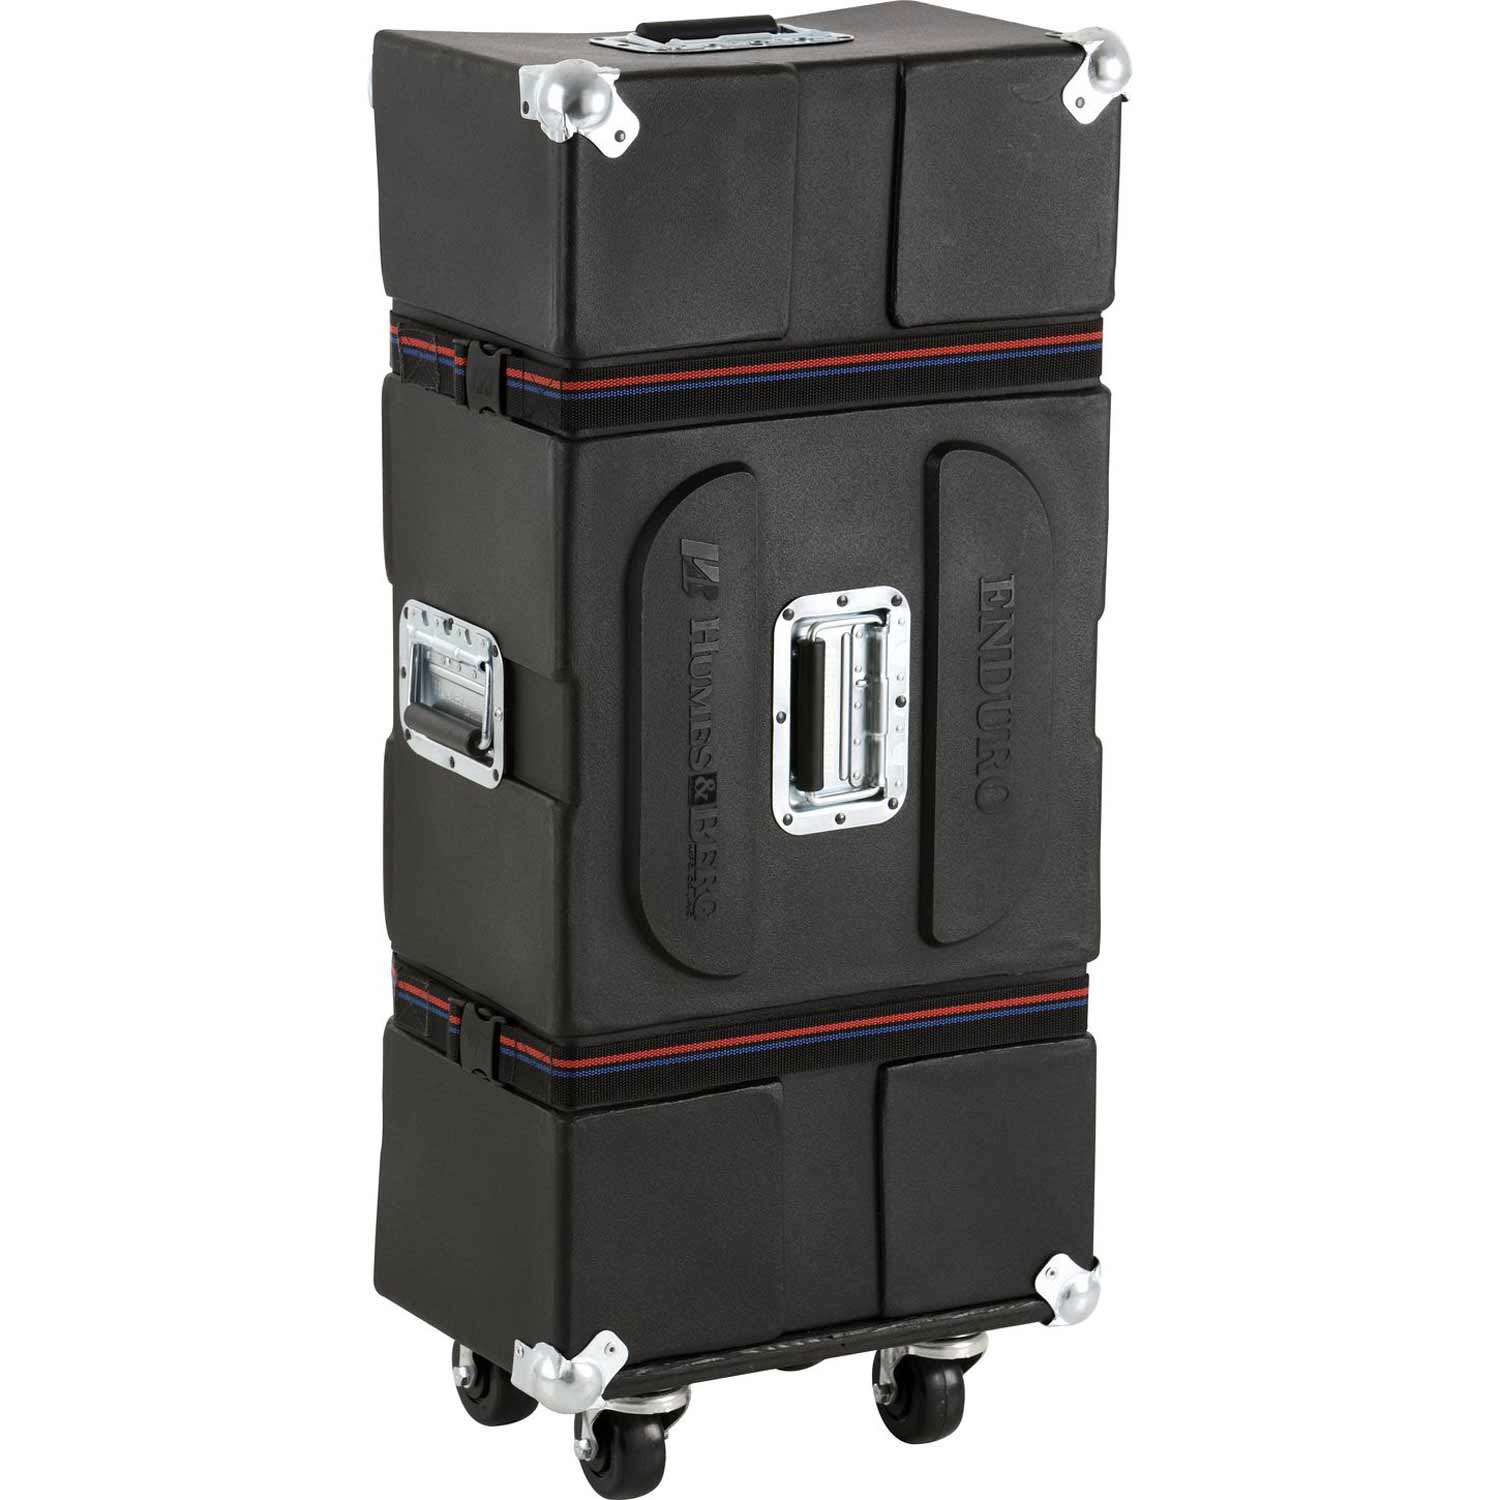 "Humes & Berg 30.5"" x 14.5"" x 12.5"" Foam Lined Enduro Companion Hardware Case with Casters"